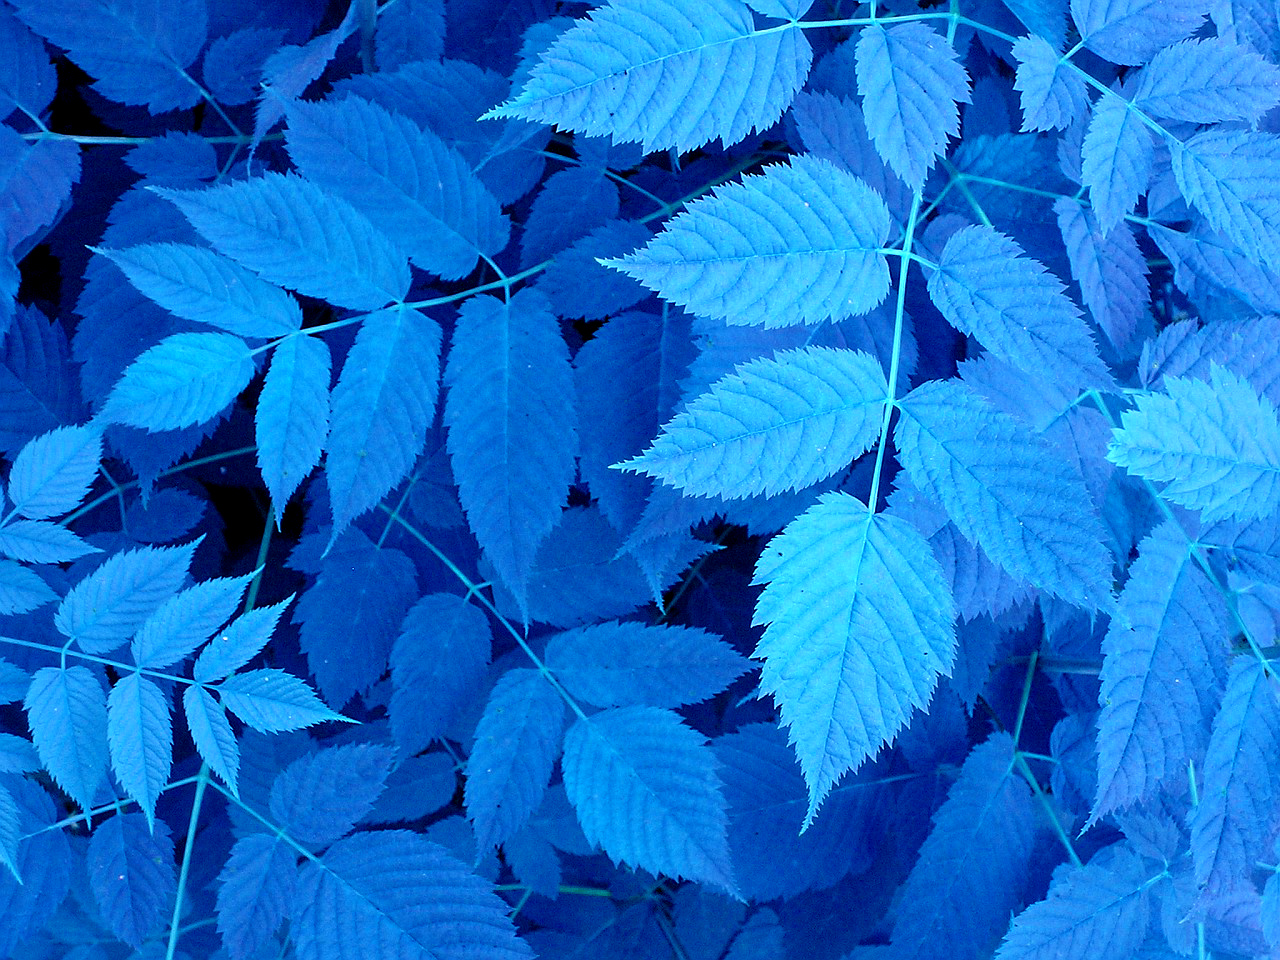 close-up-leaves-plants-x-wallpaper-wp5006136